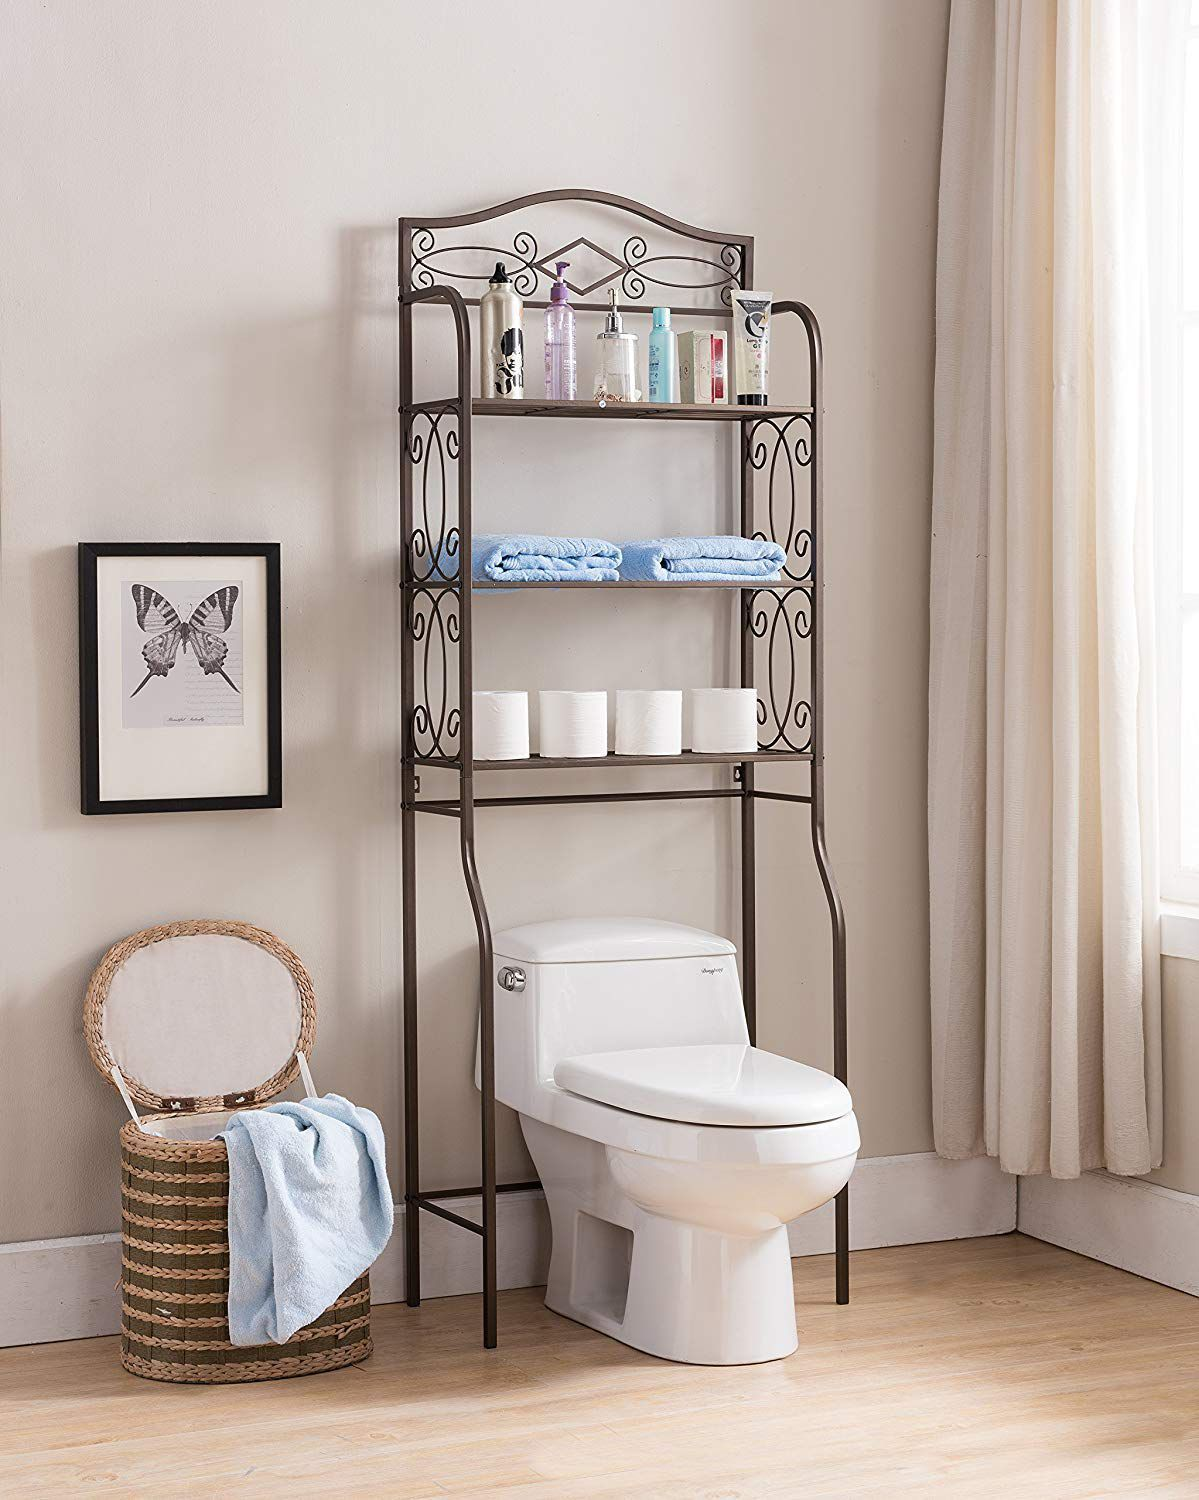 21 Small Bathroom Storage Ideas Wall Storage Solutions And Shelves